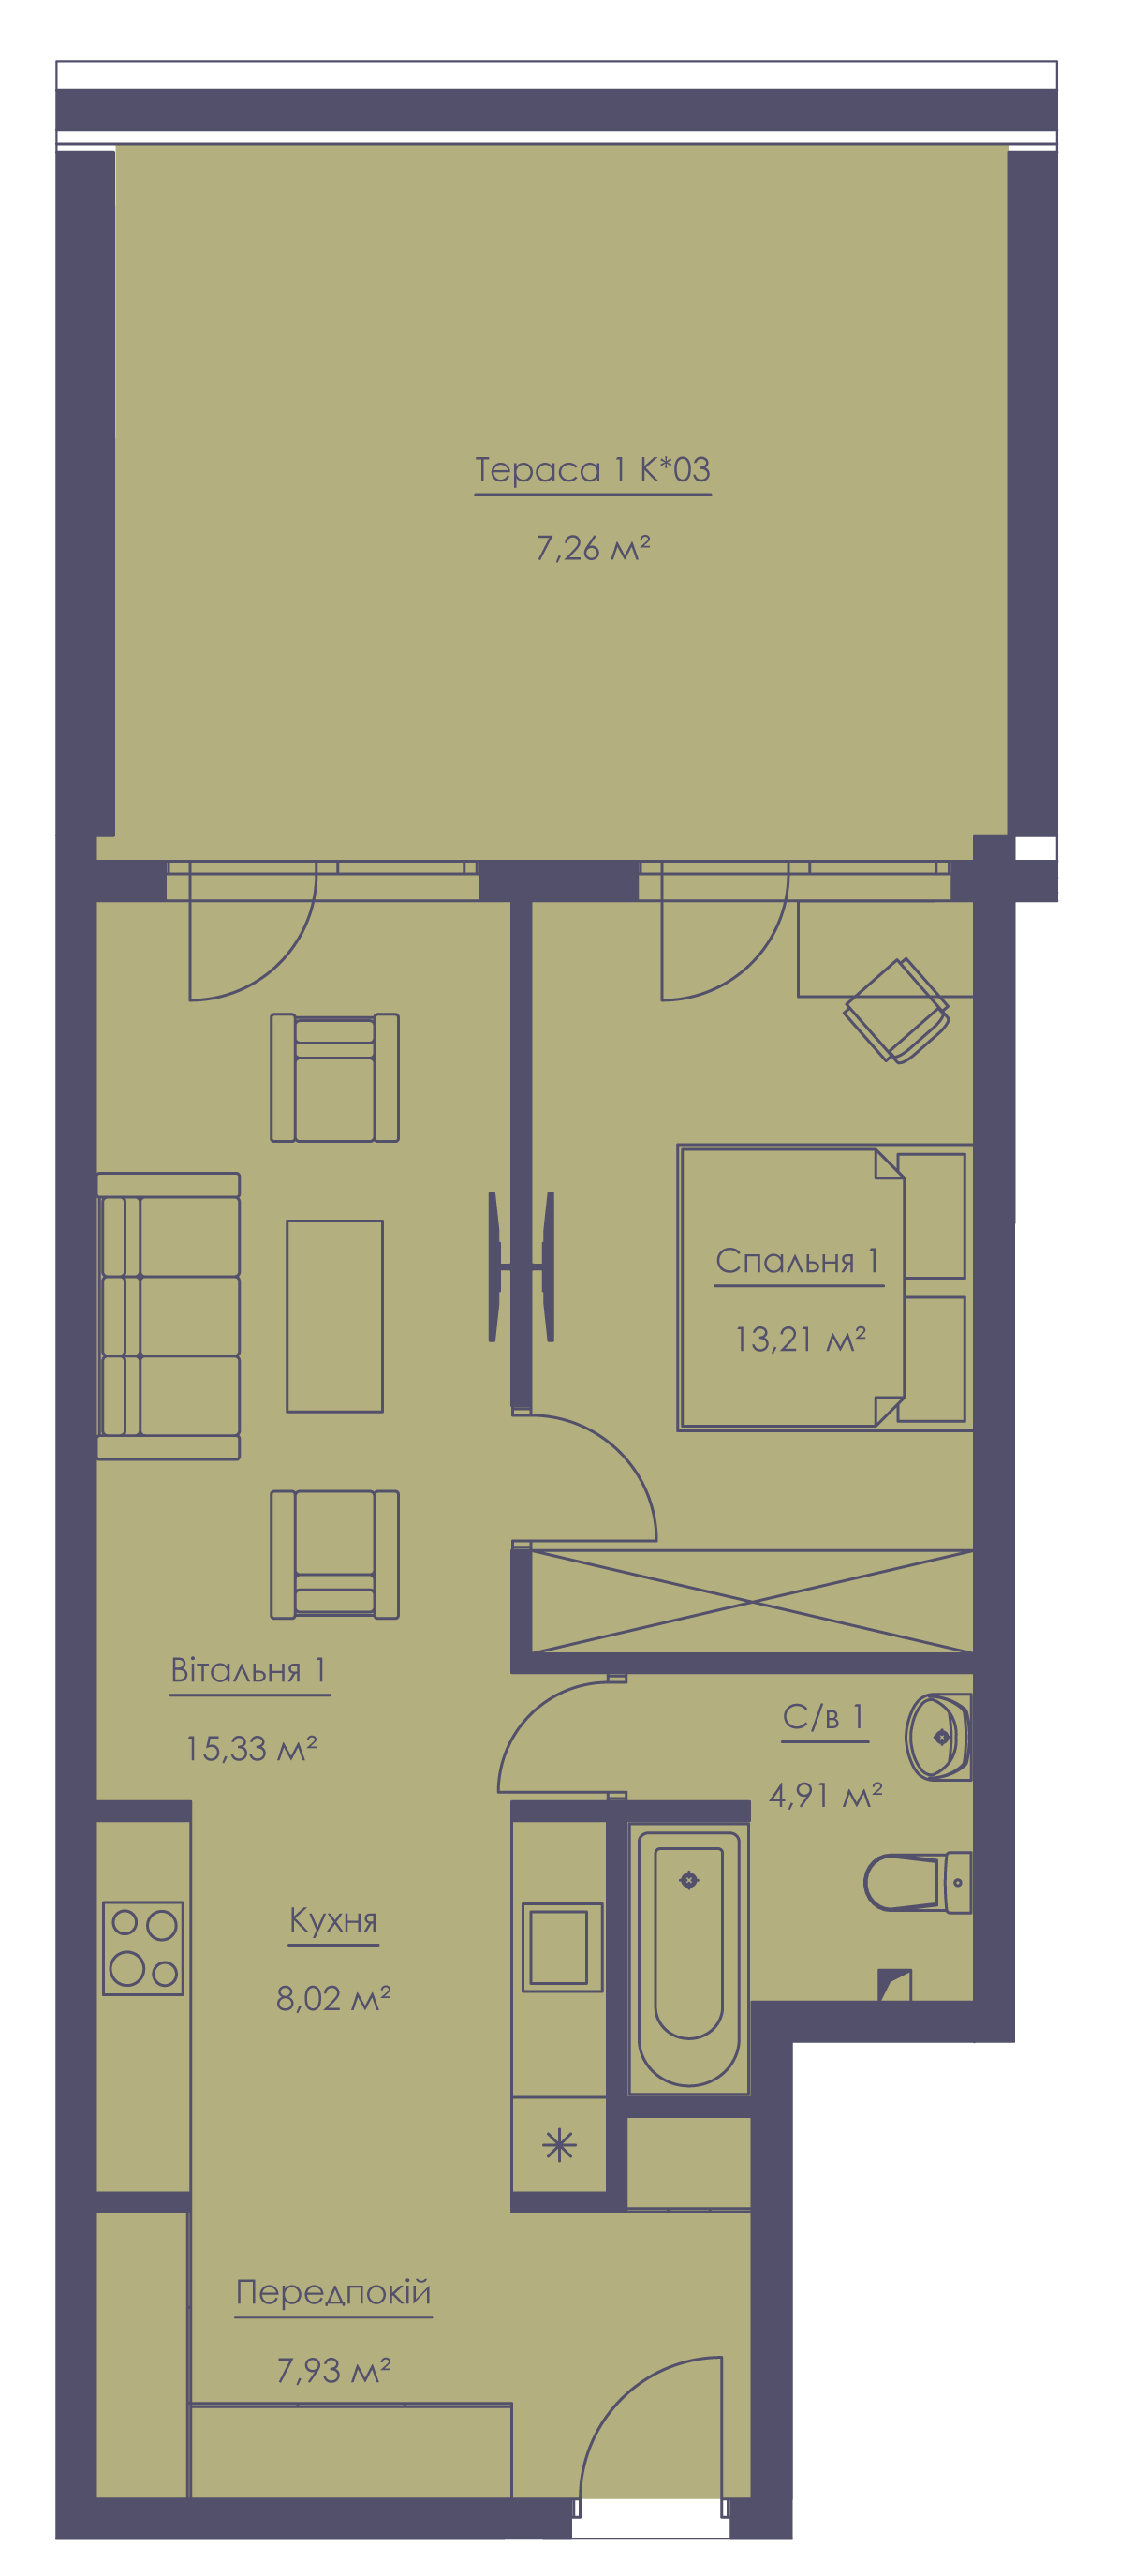 Apartment layout KV_8_1.2g_1_1_7-1